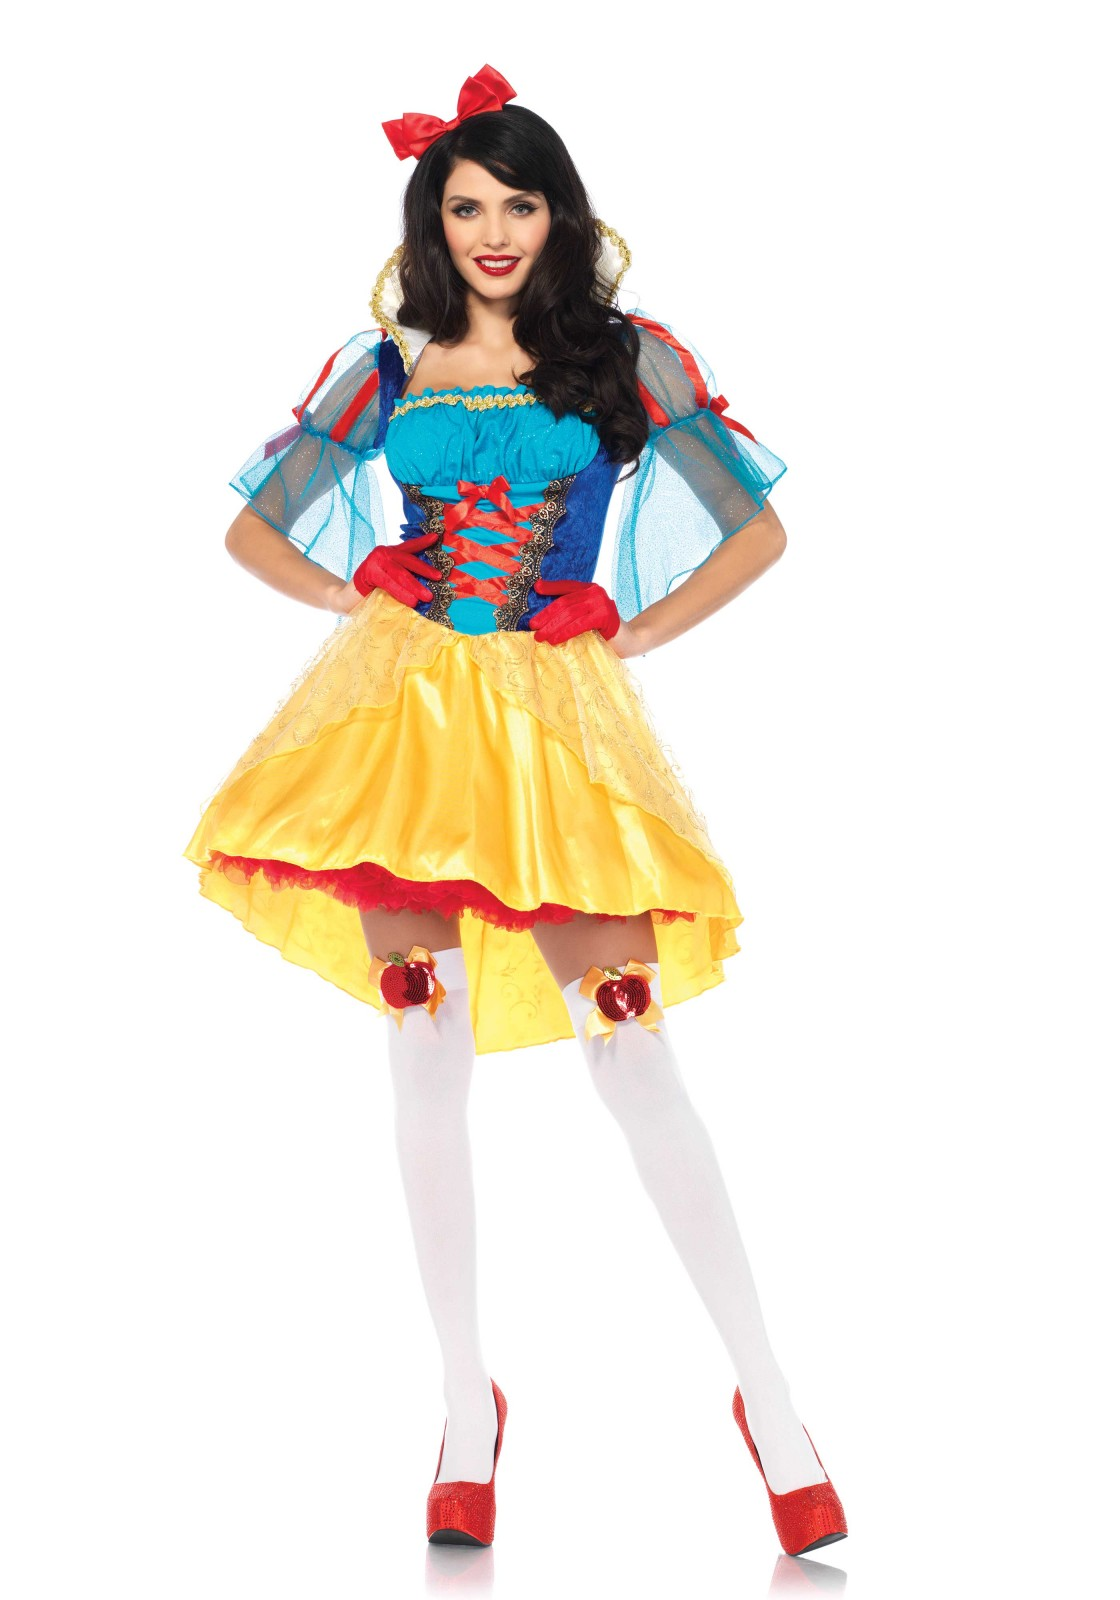 2pc. storybook snow white includes velvet and satin high/low peasant